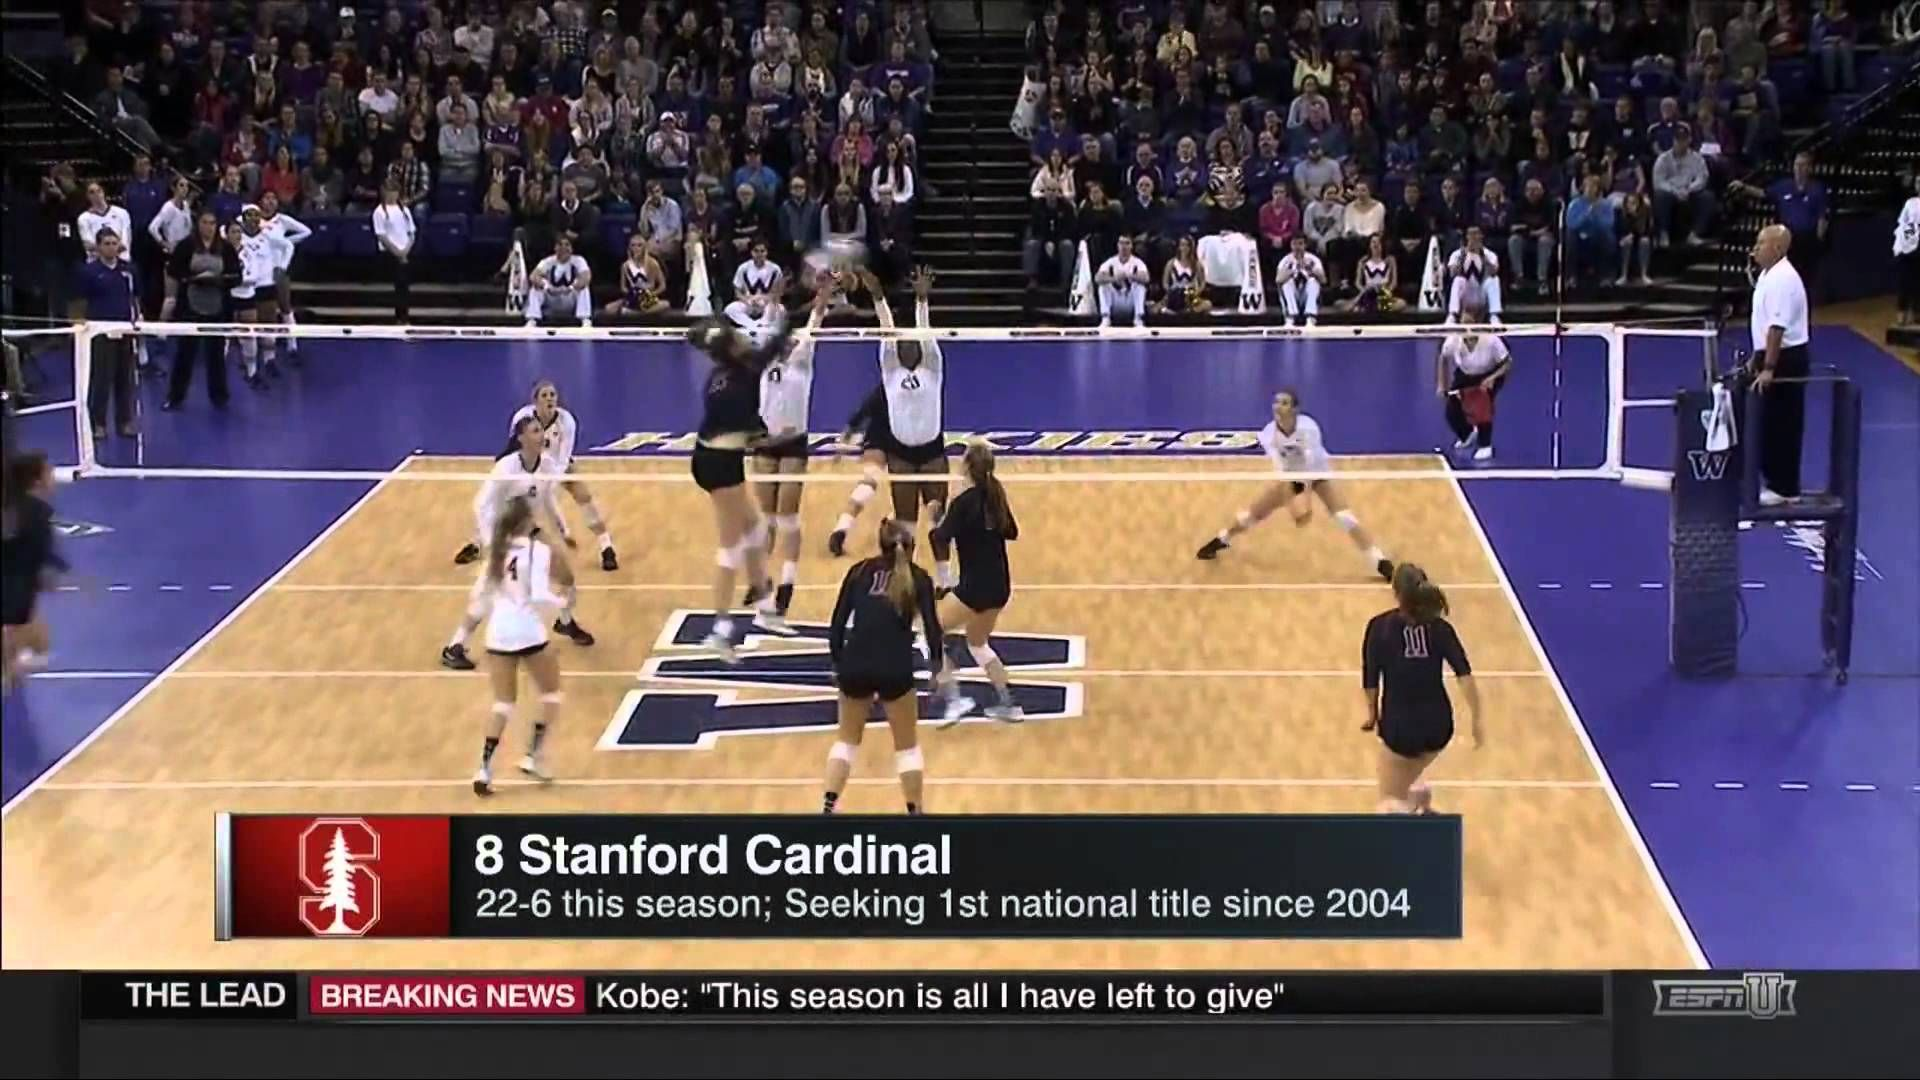 2015 29 Nov D1 Women S Volleyball Selection Show Women Volleyball Volleyball News Volleyball